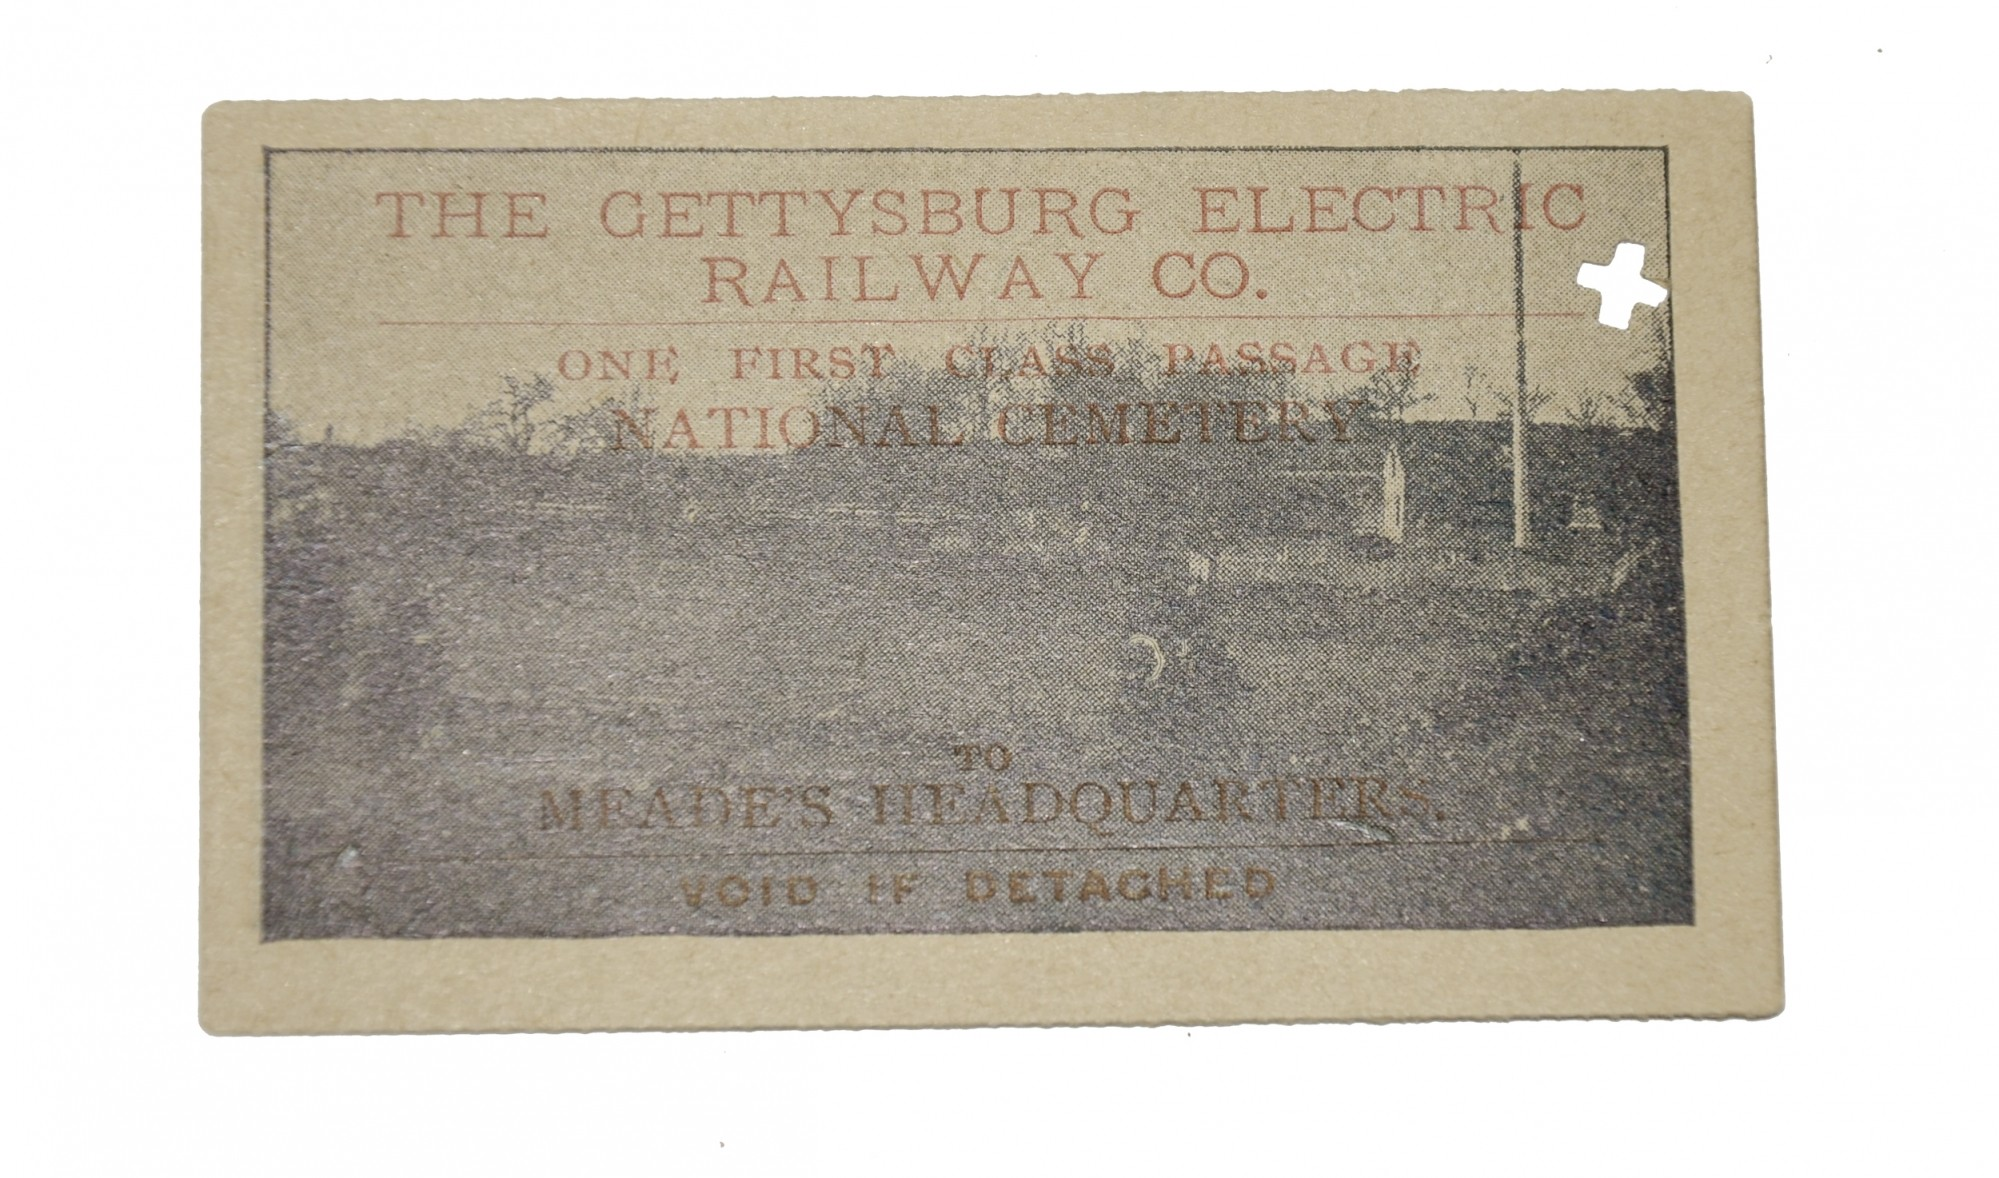 GETTYSBURG ELECTRIC RAILWAY TICKET